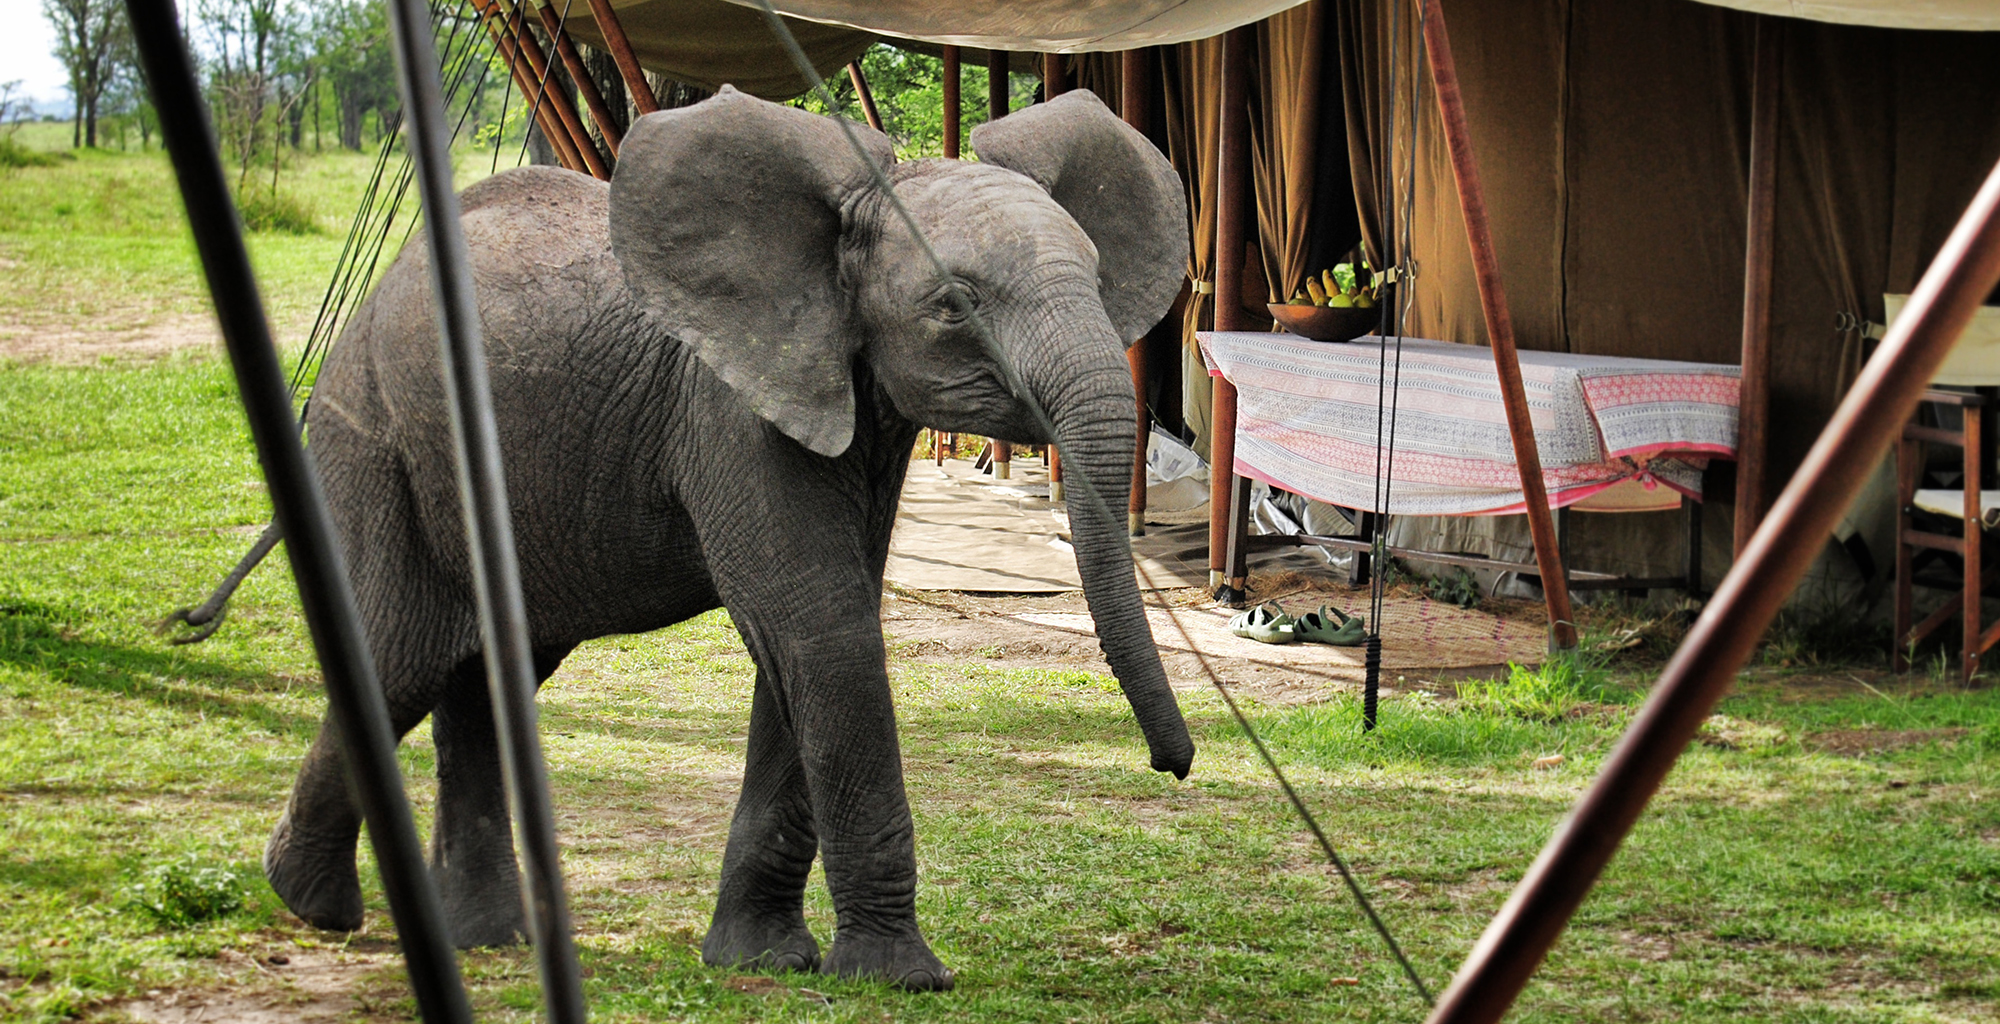 Tanzania-Serians-Serengeti-Mobile-Camp-Elephant-in-Camp